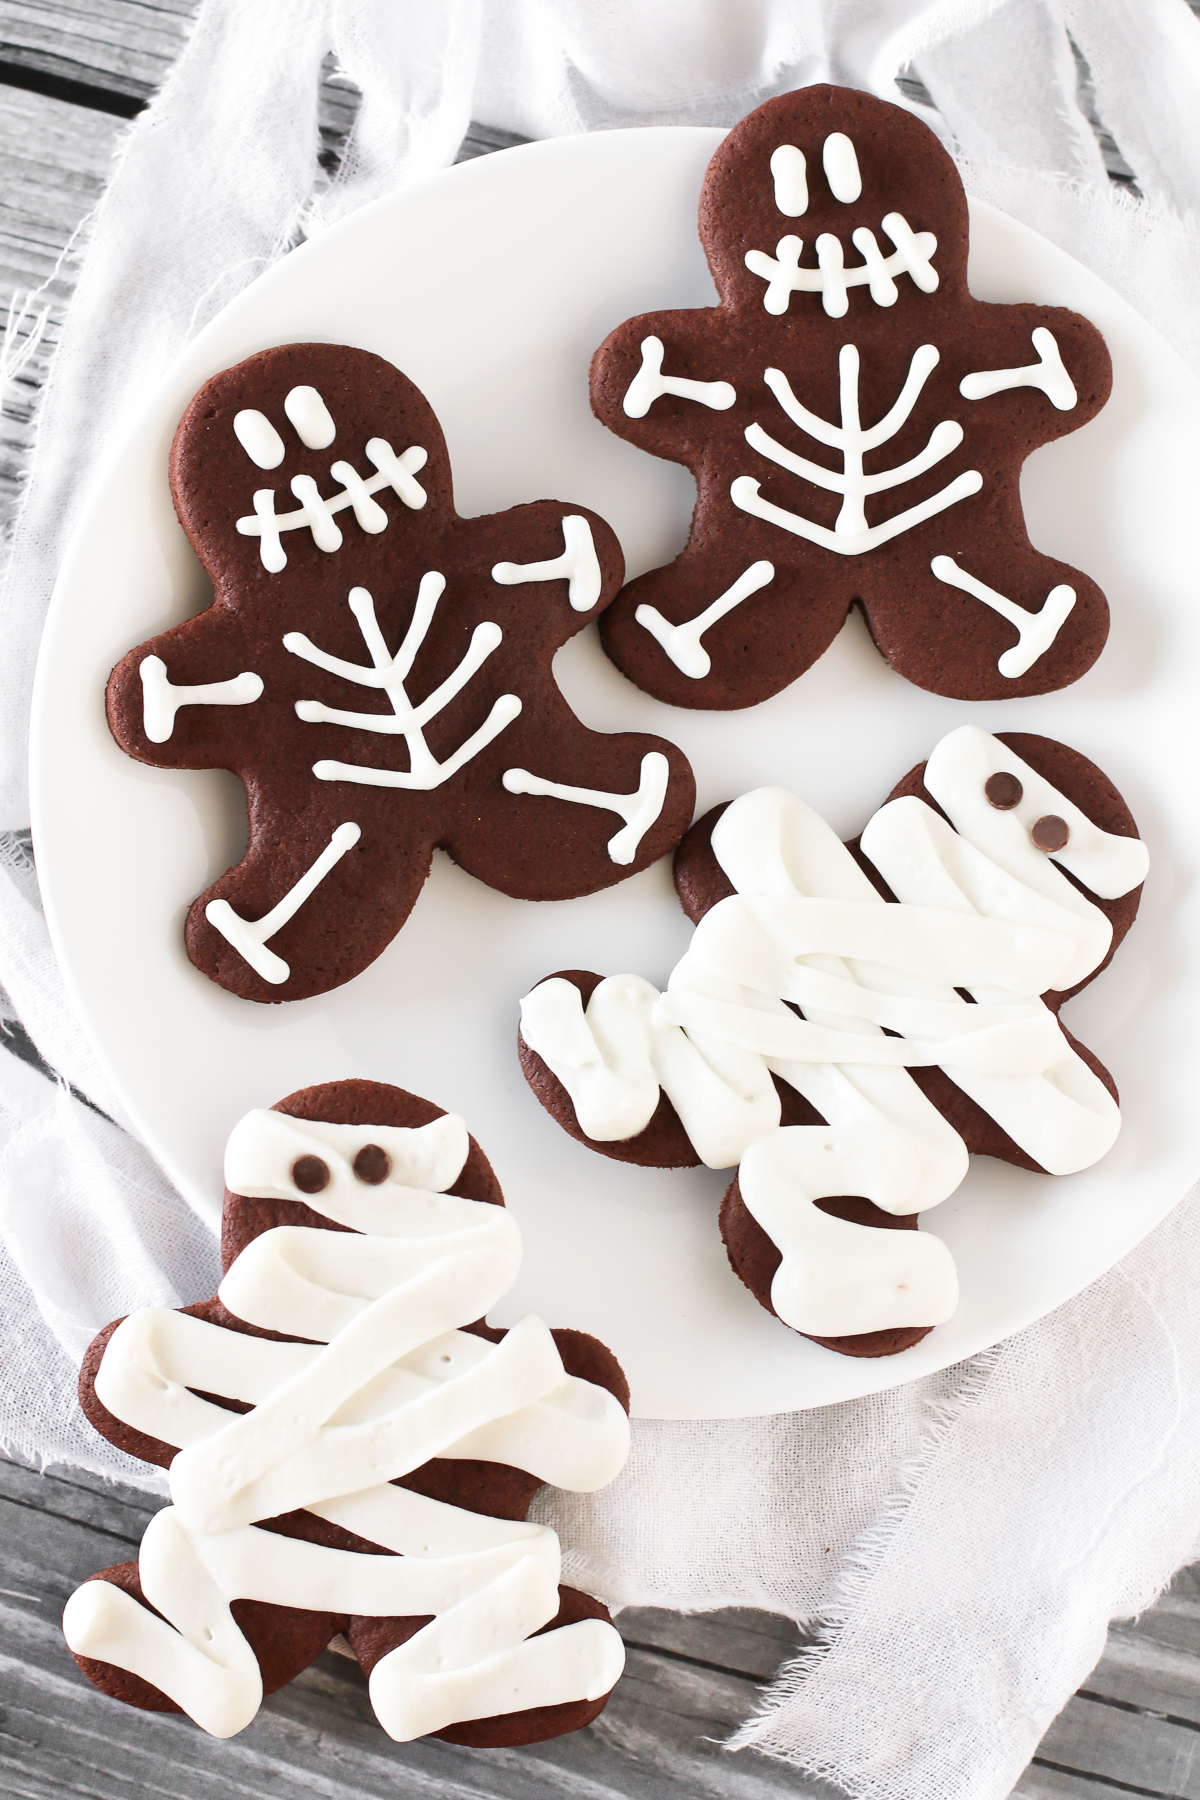 Gluten Free Vegan Halloween Chocolate Sugar Cookies. These cutout cookies are both spooky and sweet!